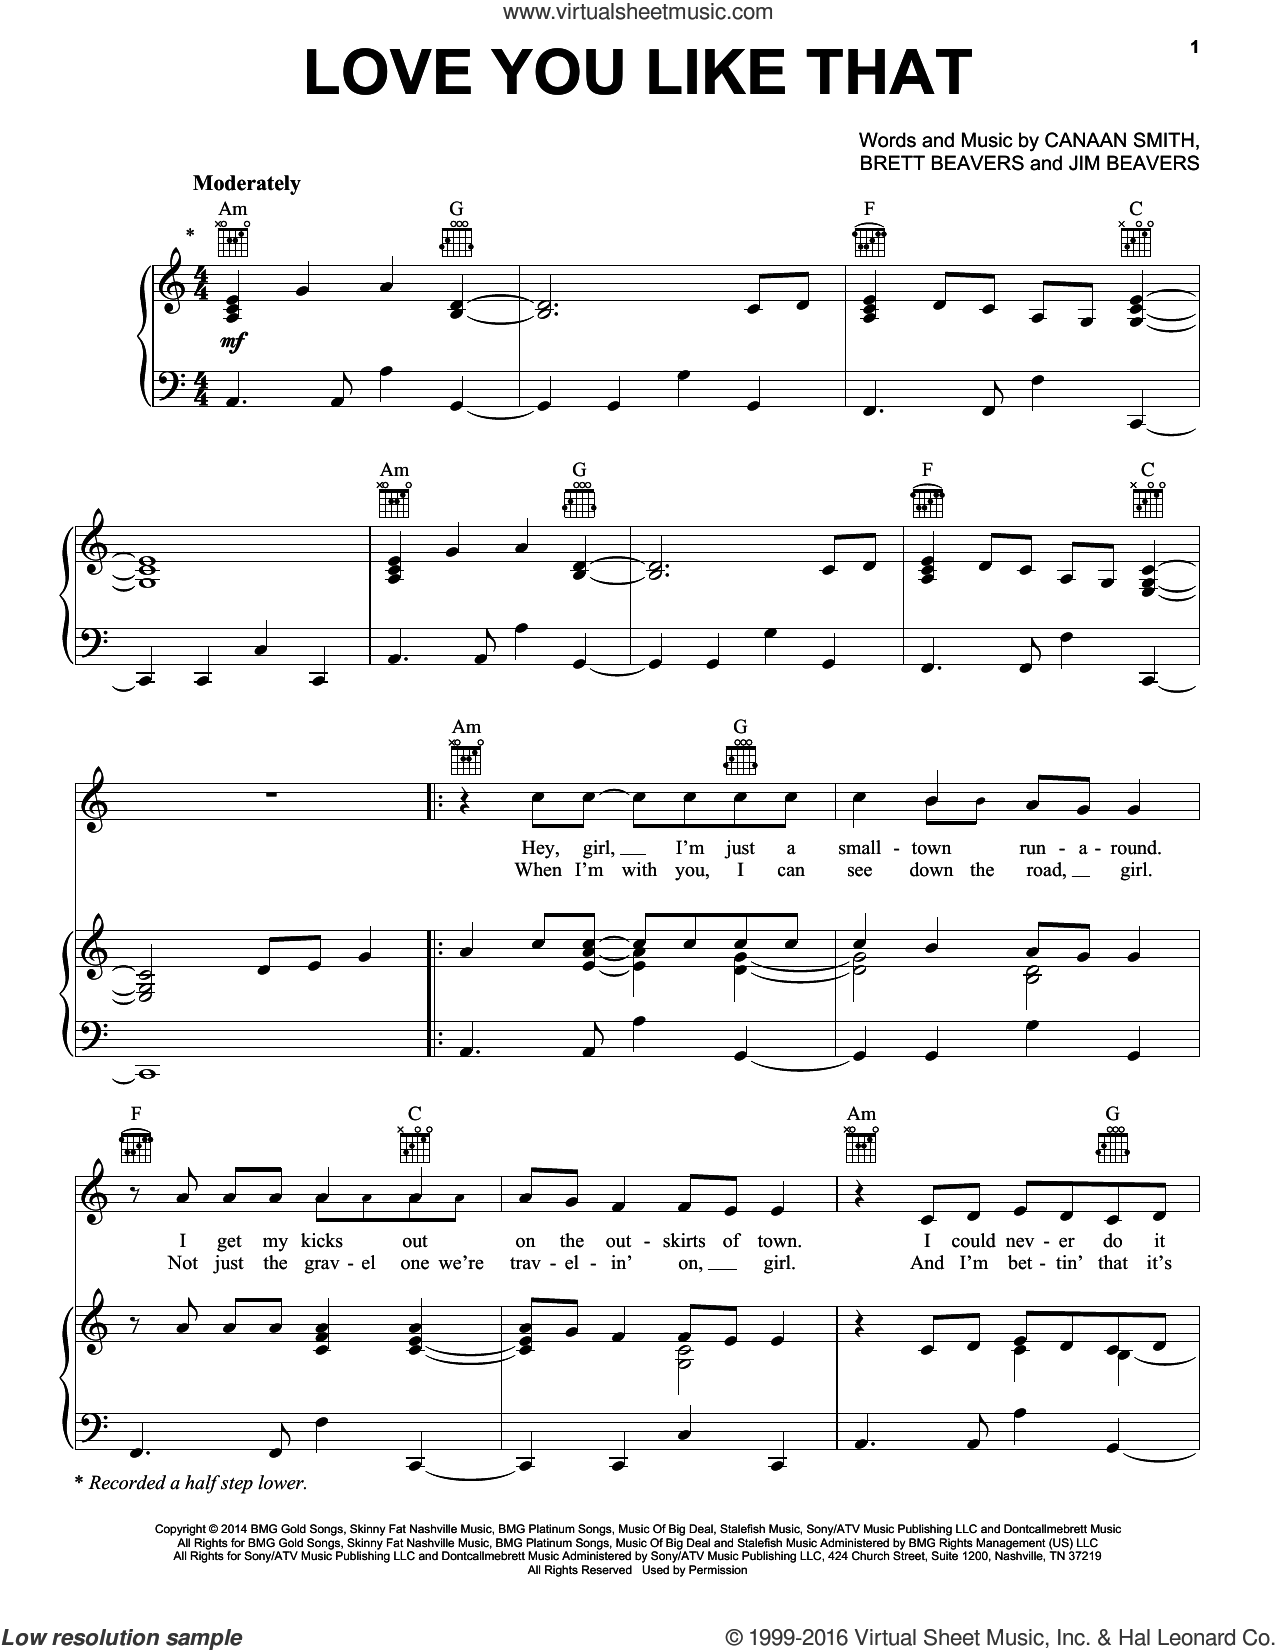 Love You Like That sheet music for voice, piano or guitar by Canaan Smith, Brett Beavers and Jim Beavers, intermediate skill level